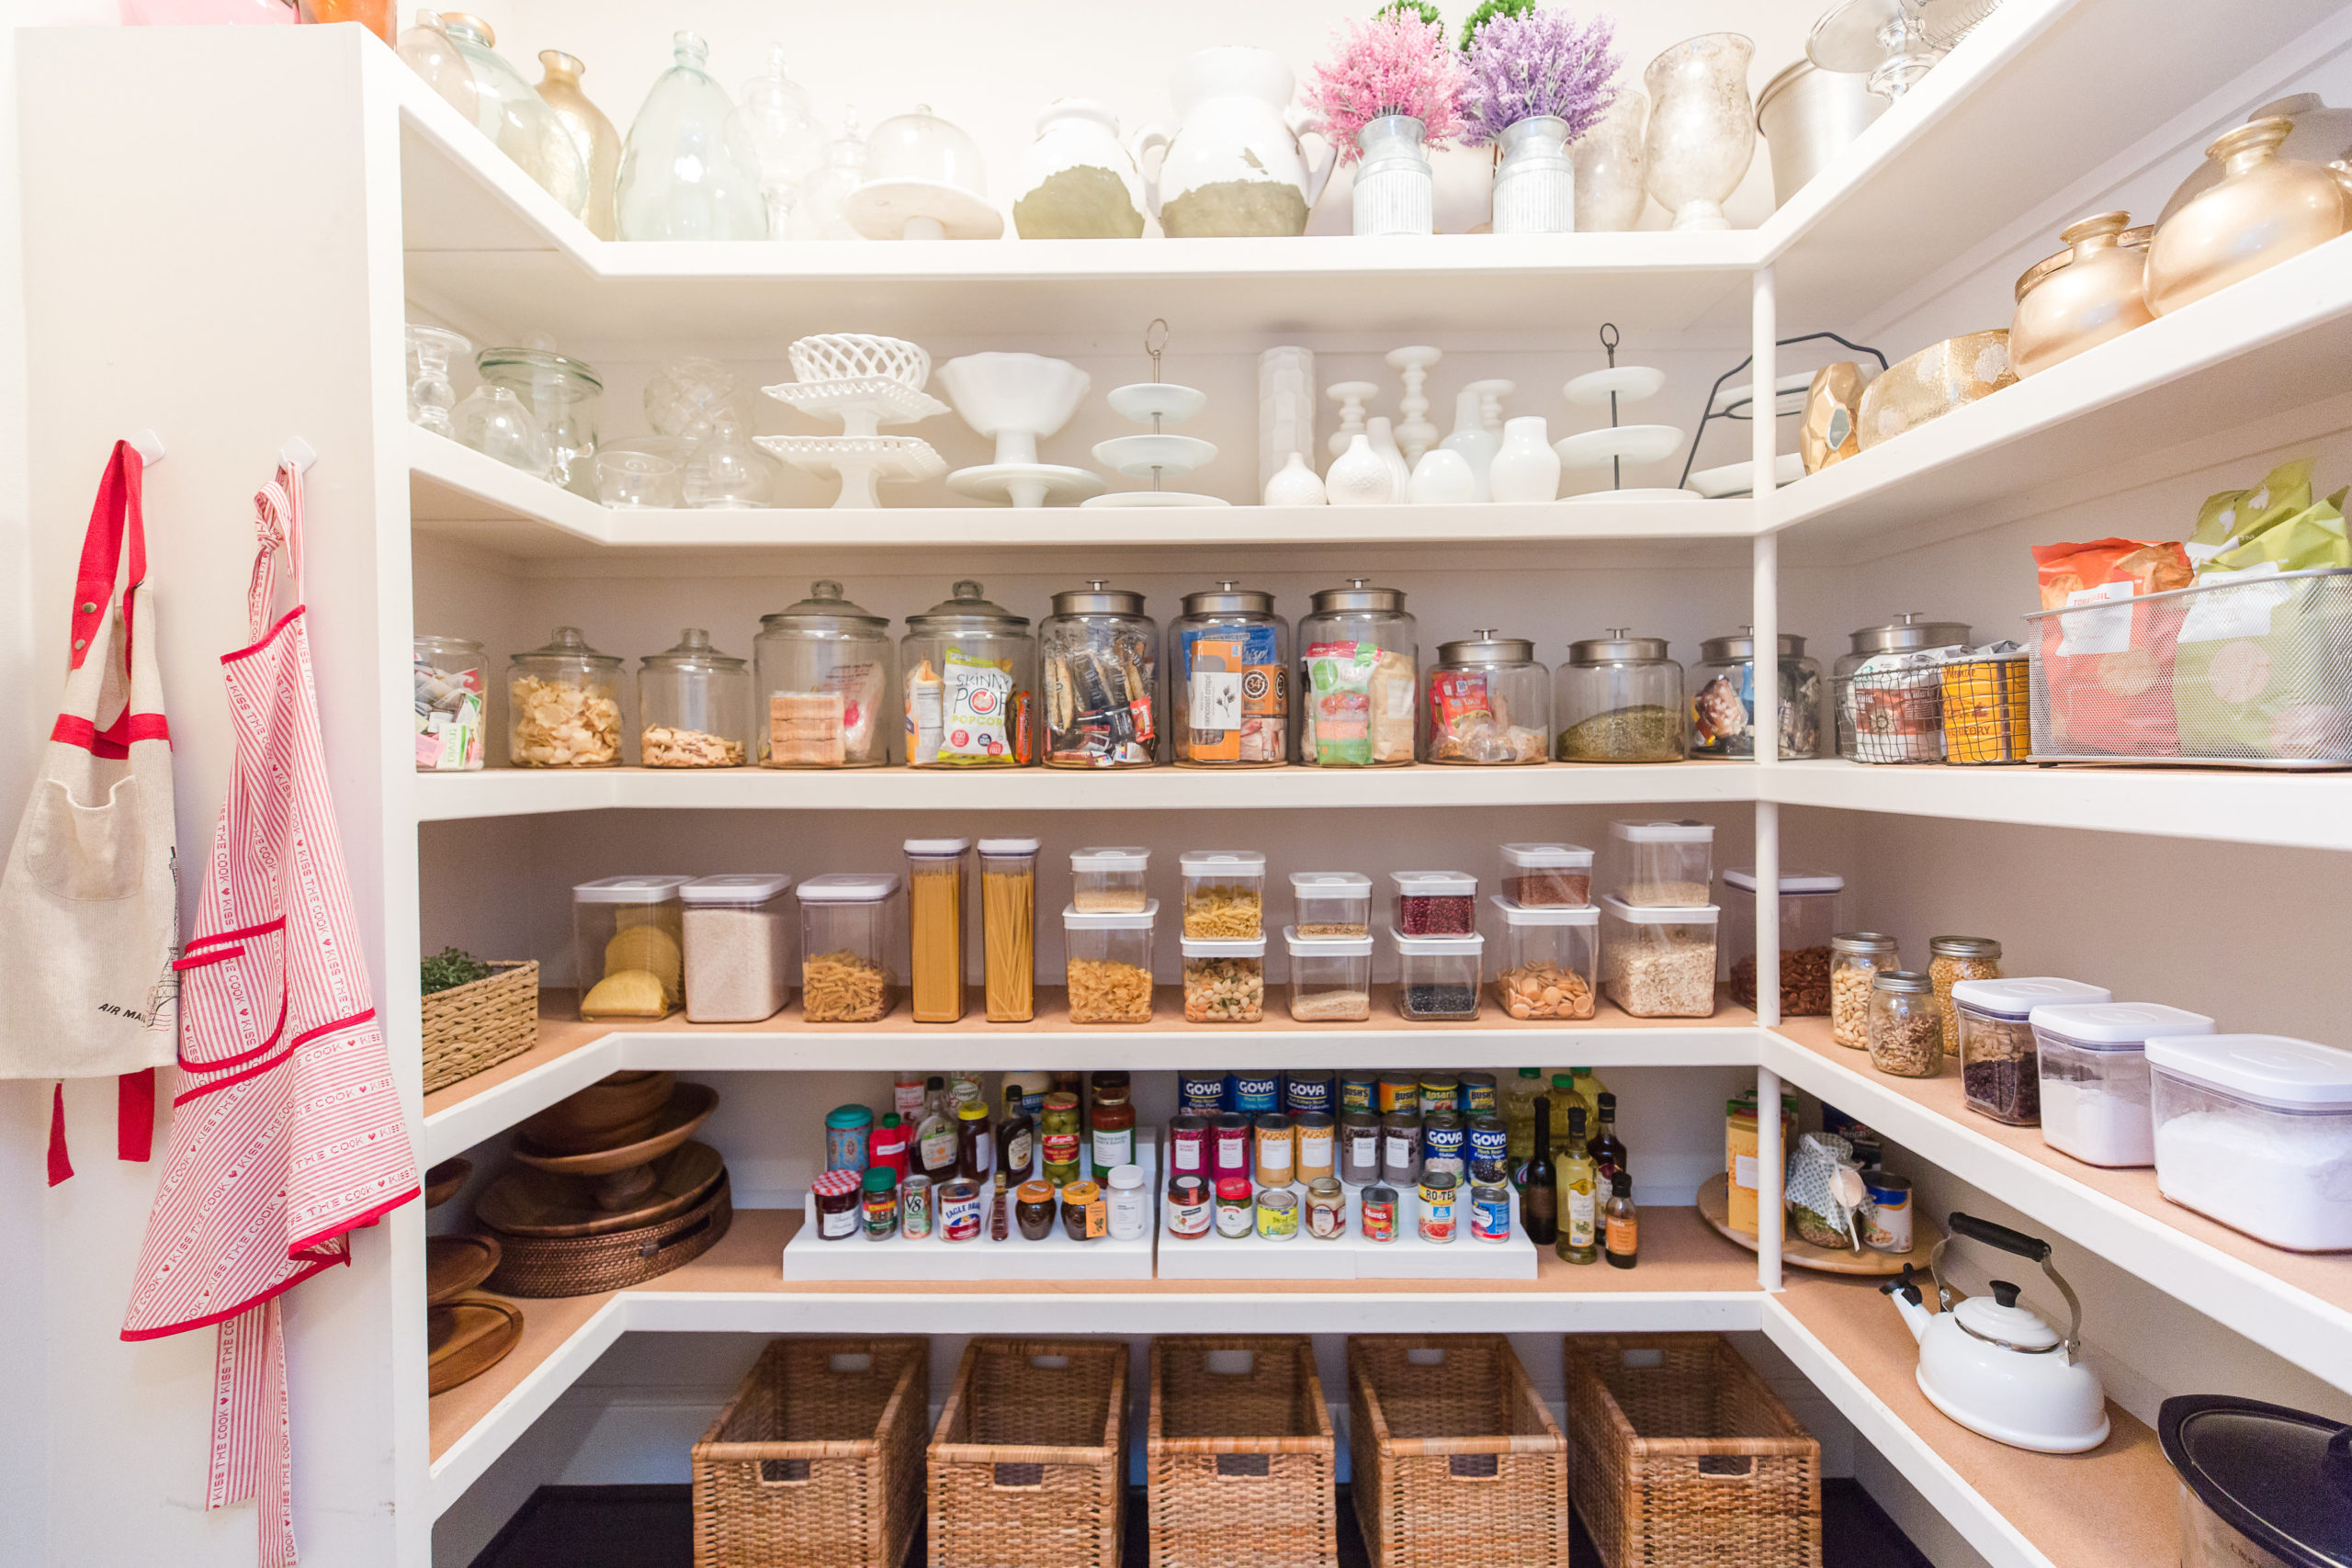 A well-organized pantry with white shelves